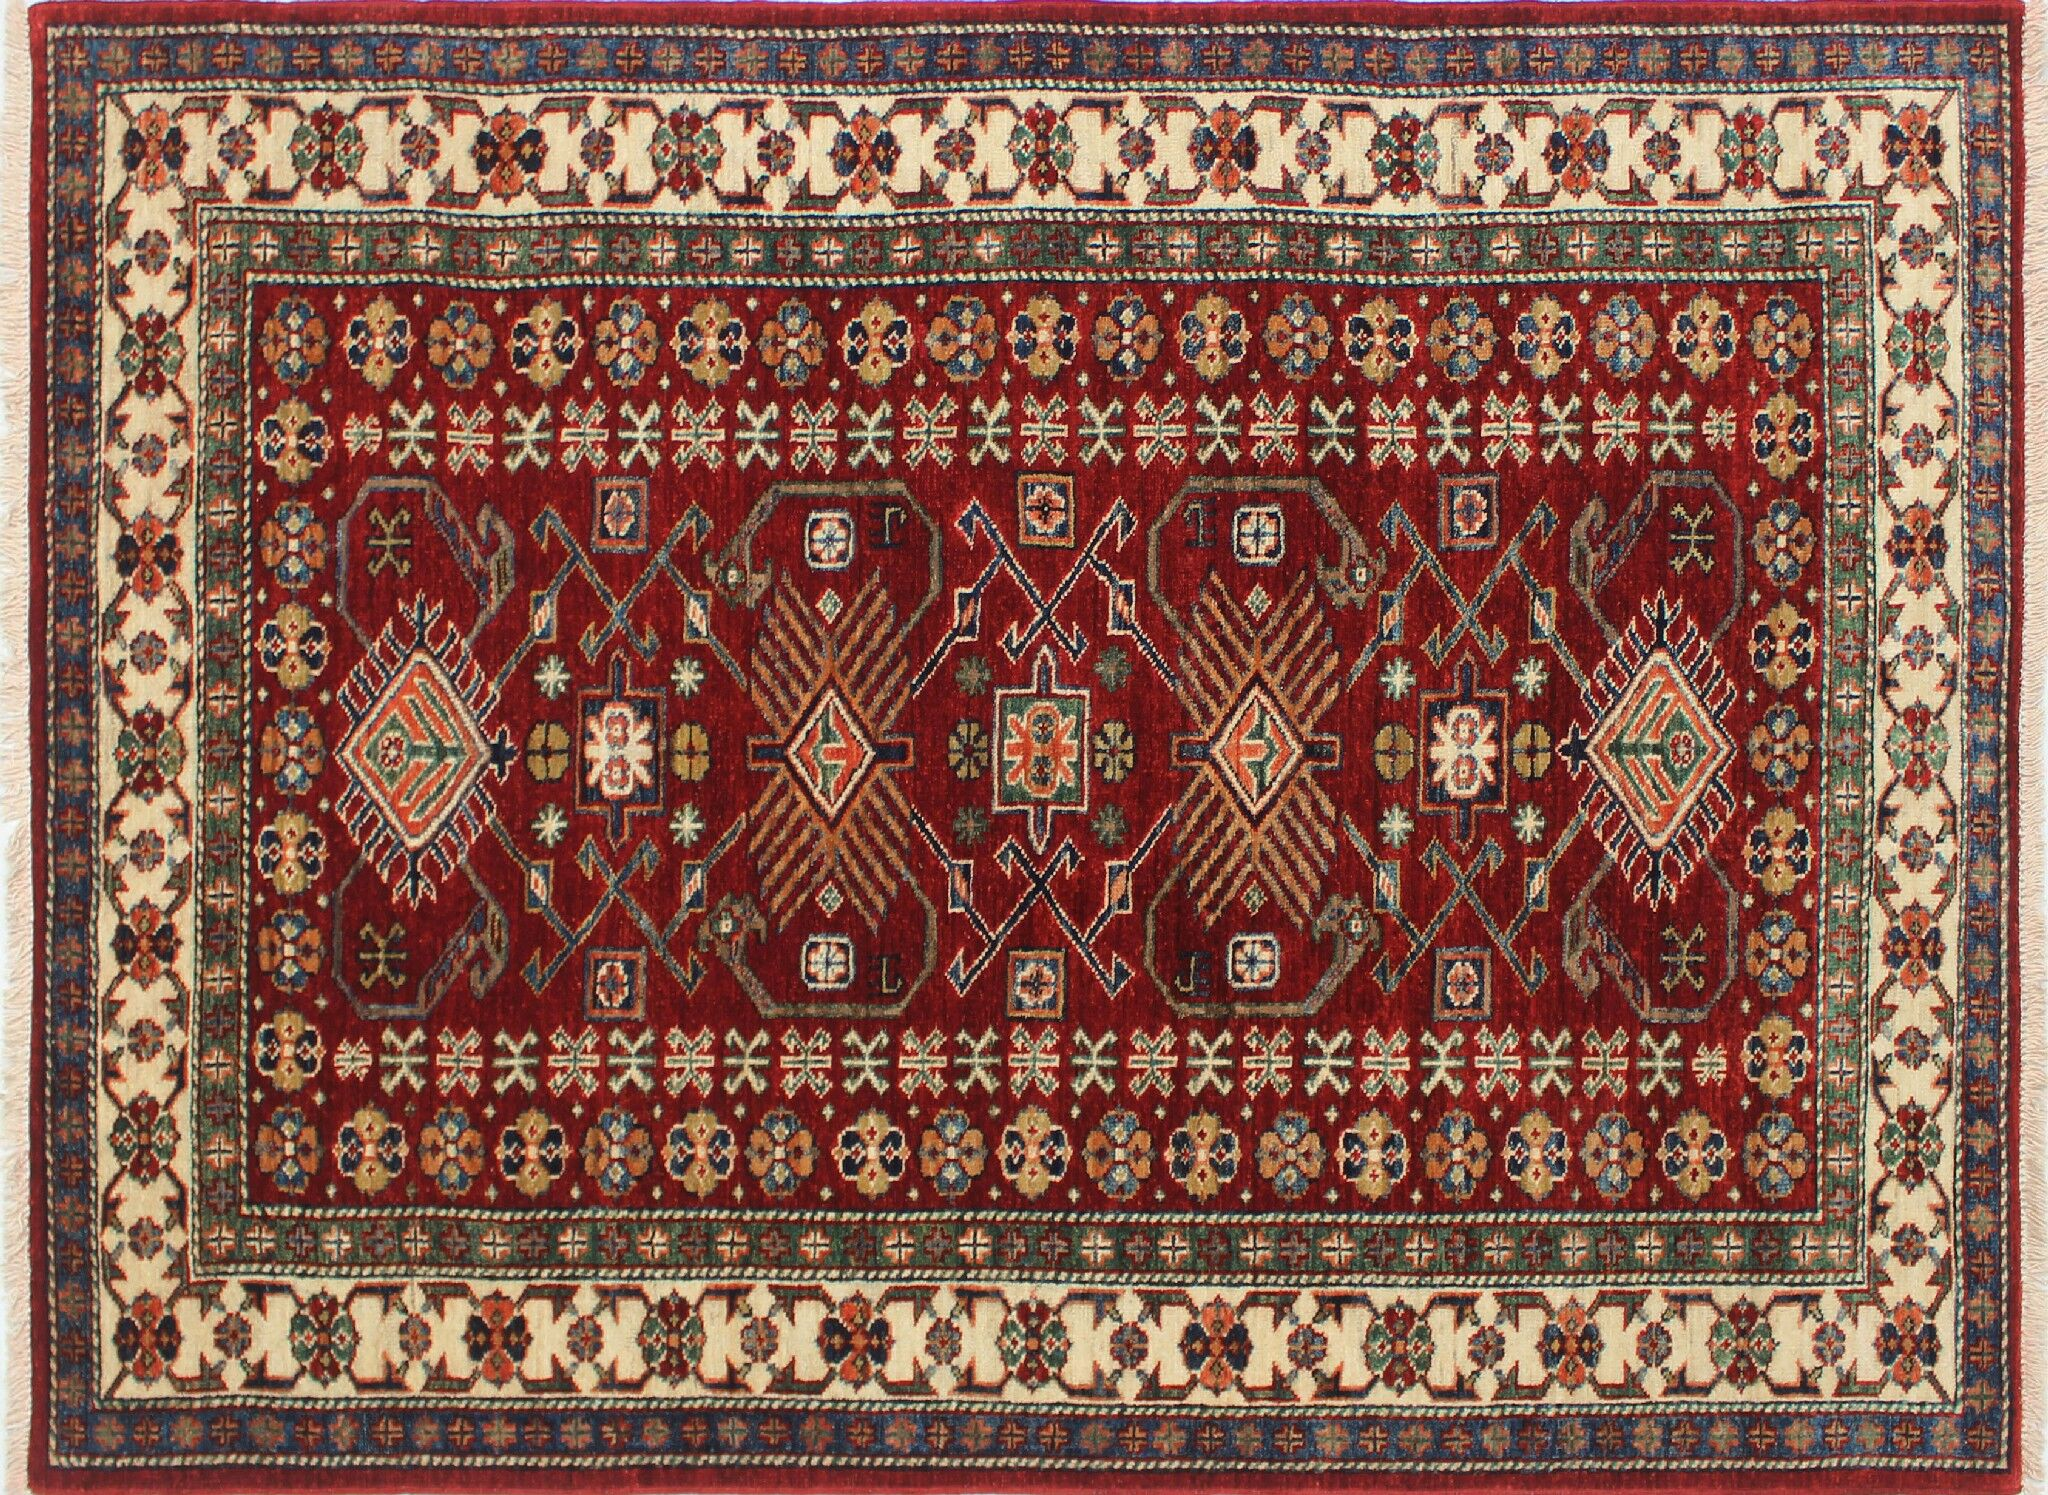 One-of-a-Kind Kazak Super Asad Hand-Knotted Red Area Rug